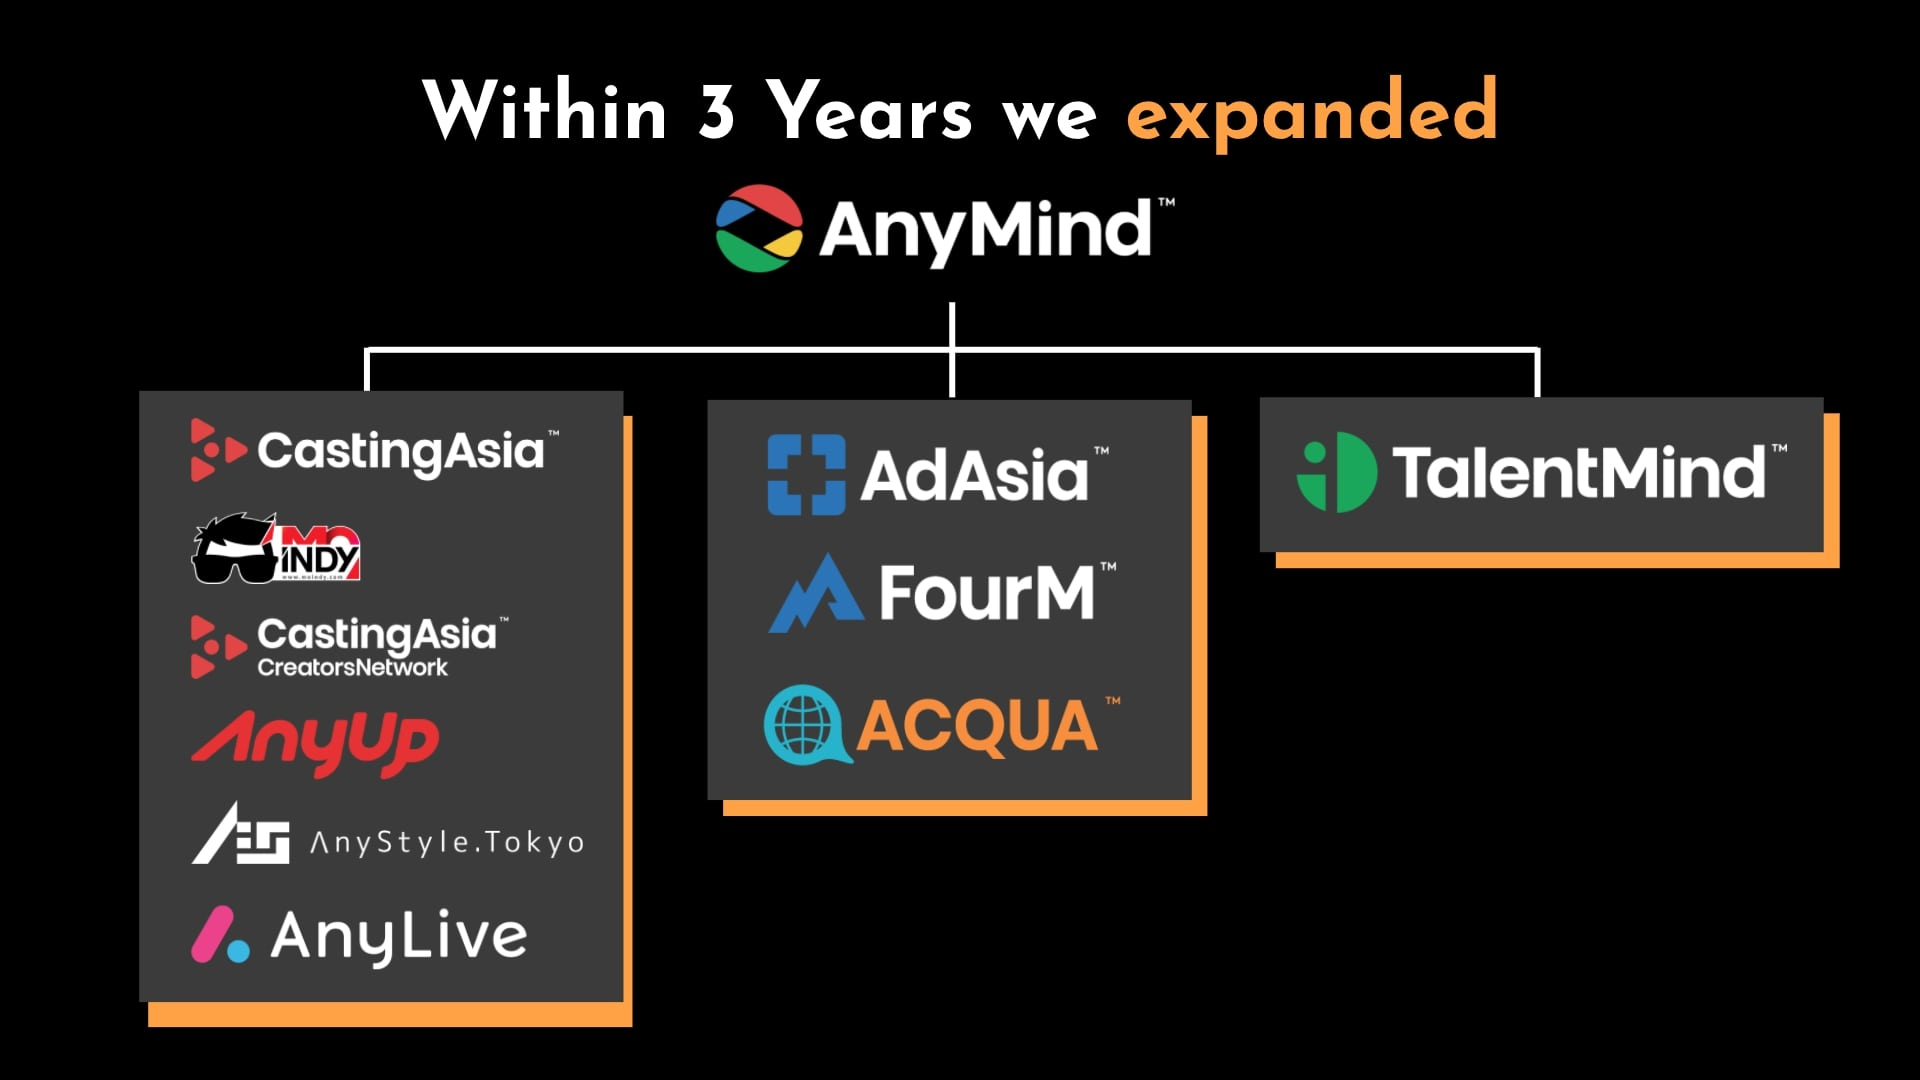 AnyMind expansion after 3 years